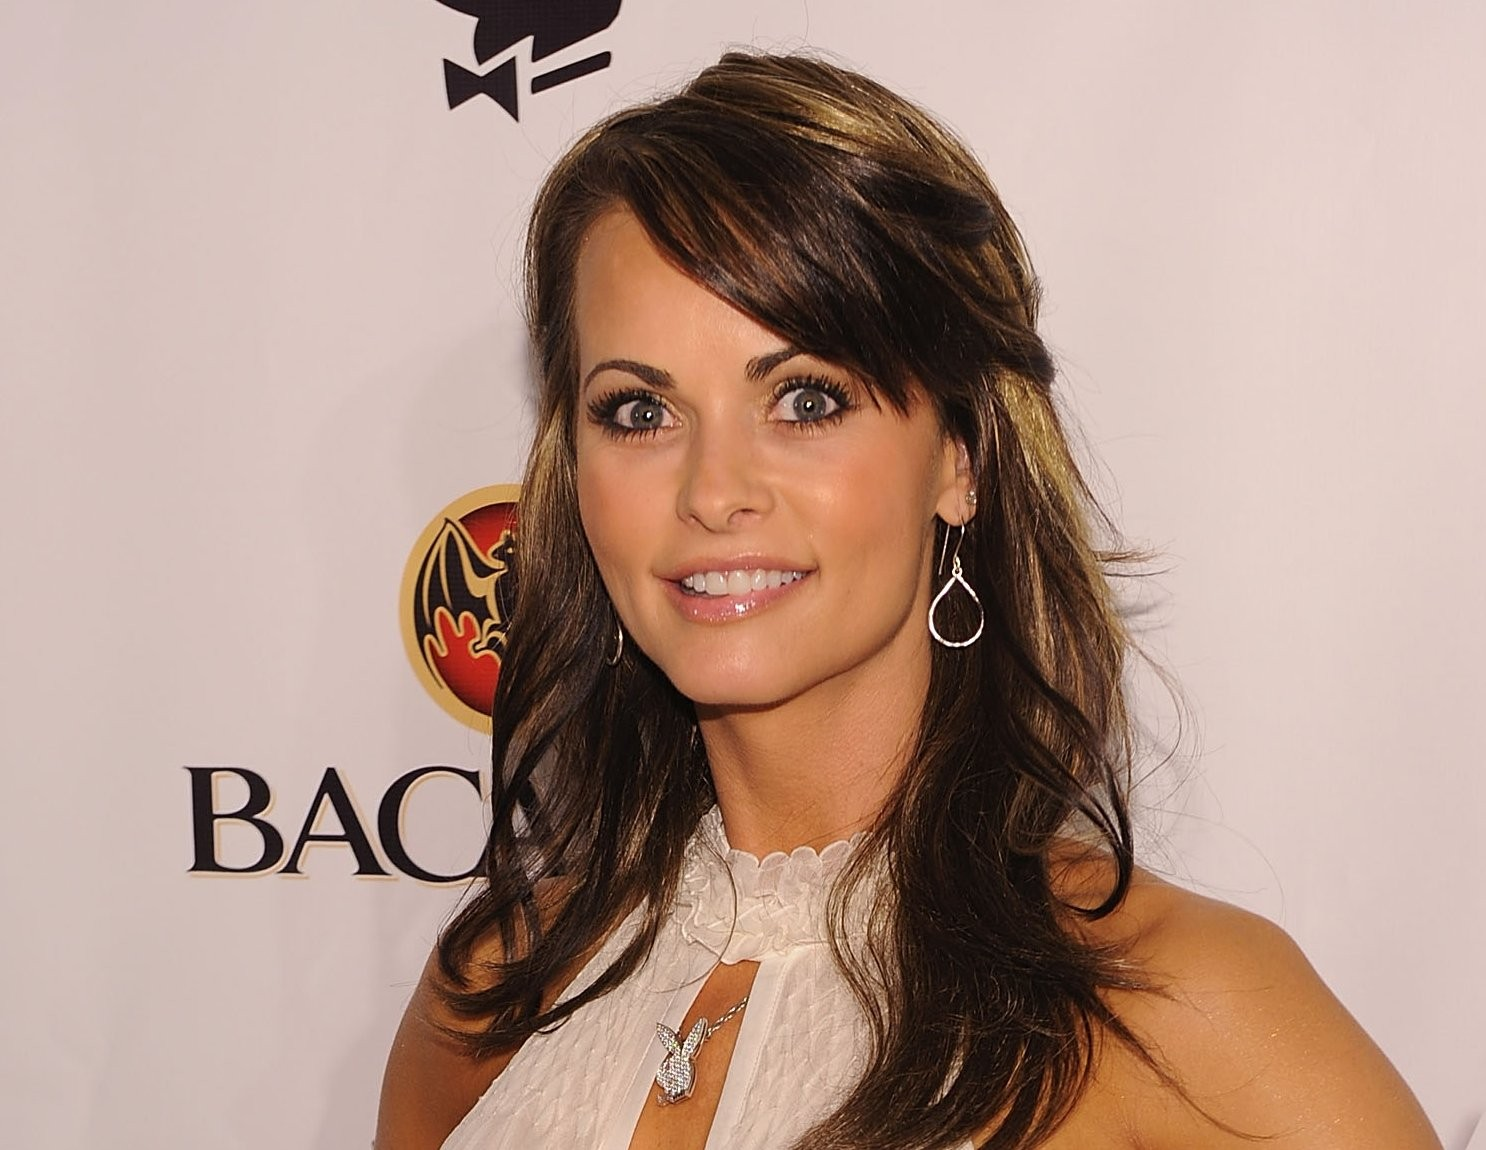 Karen McDougal McDOUGALis also suing to end a deal to keep her story private. — Photograph: D. Kambouris/Getty Images.